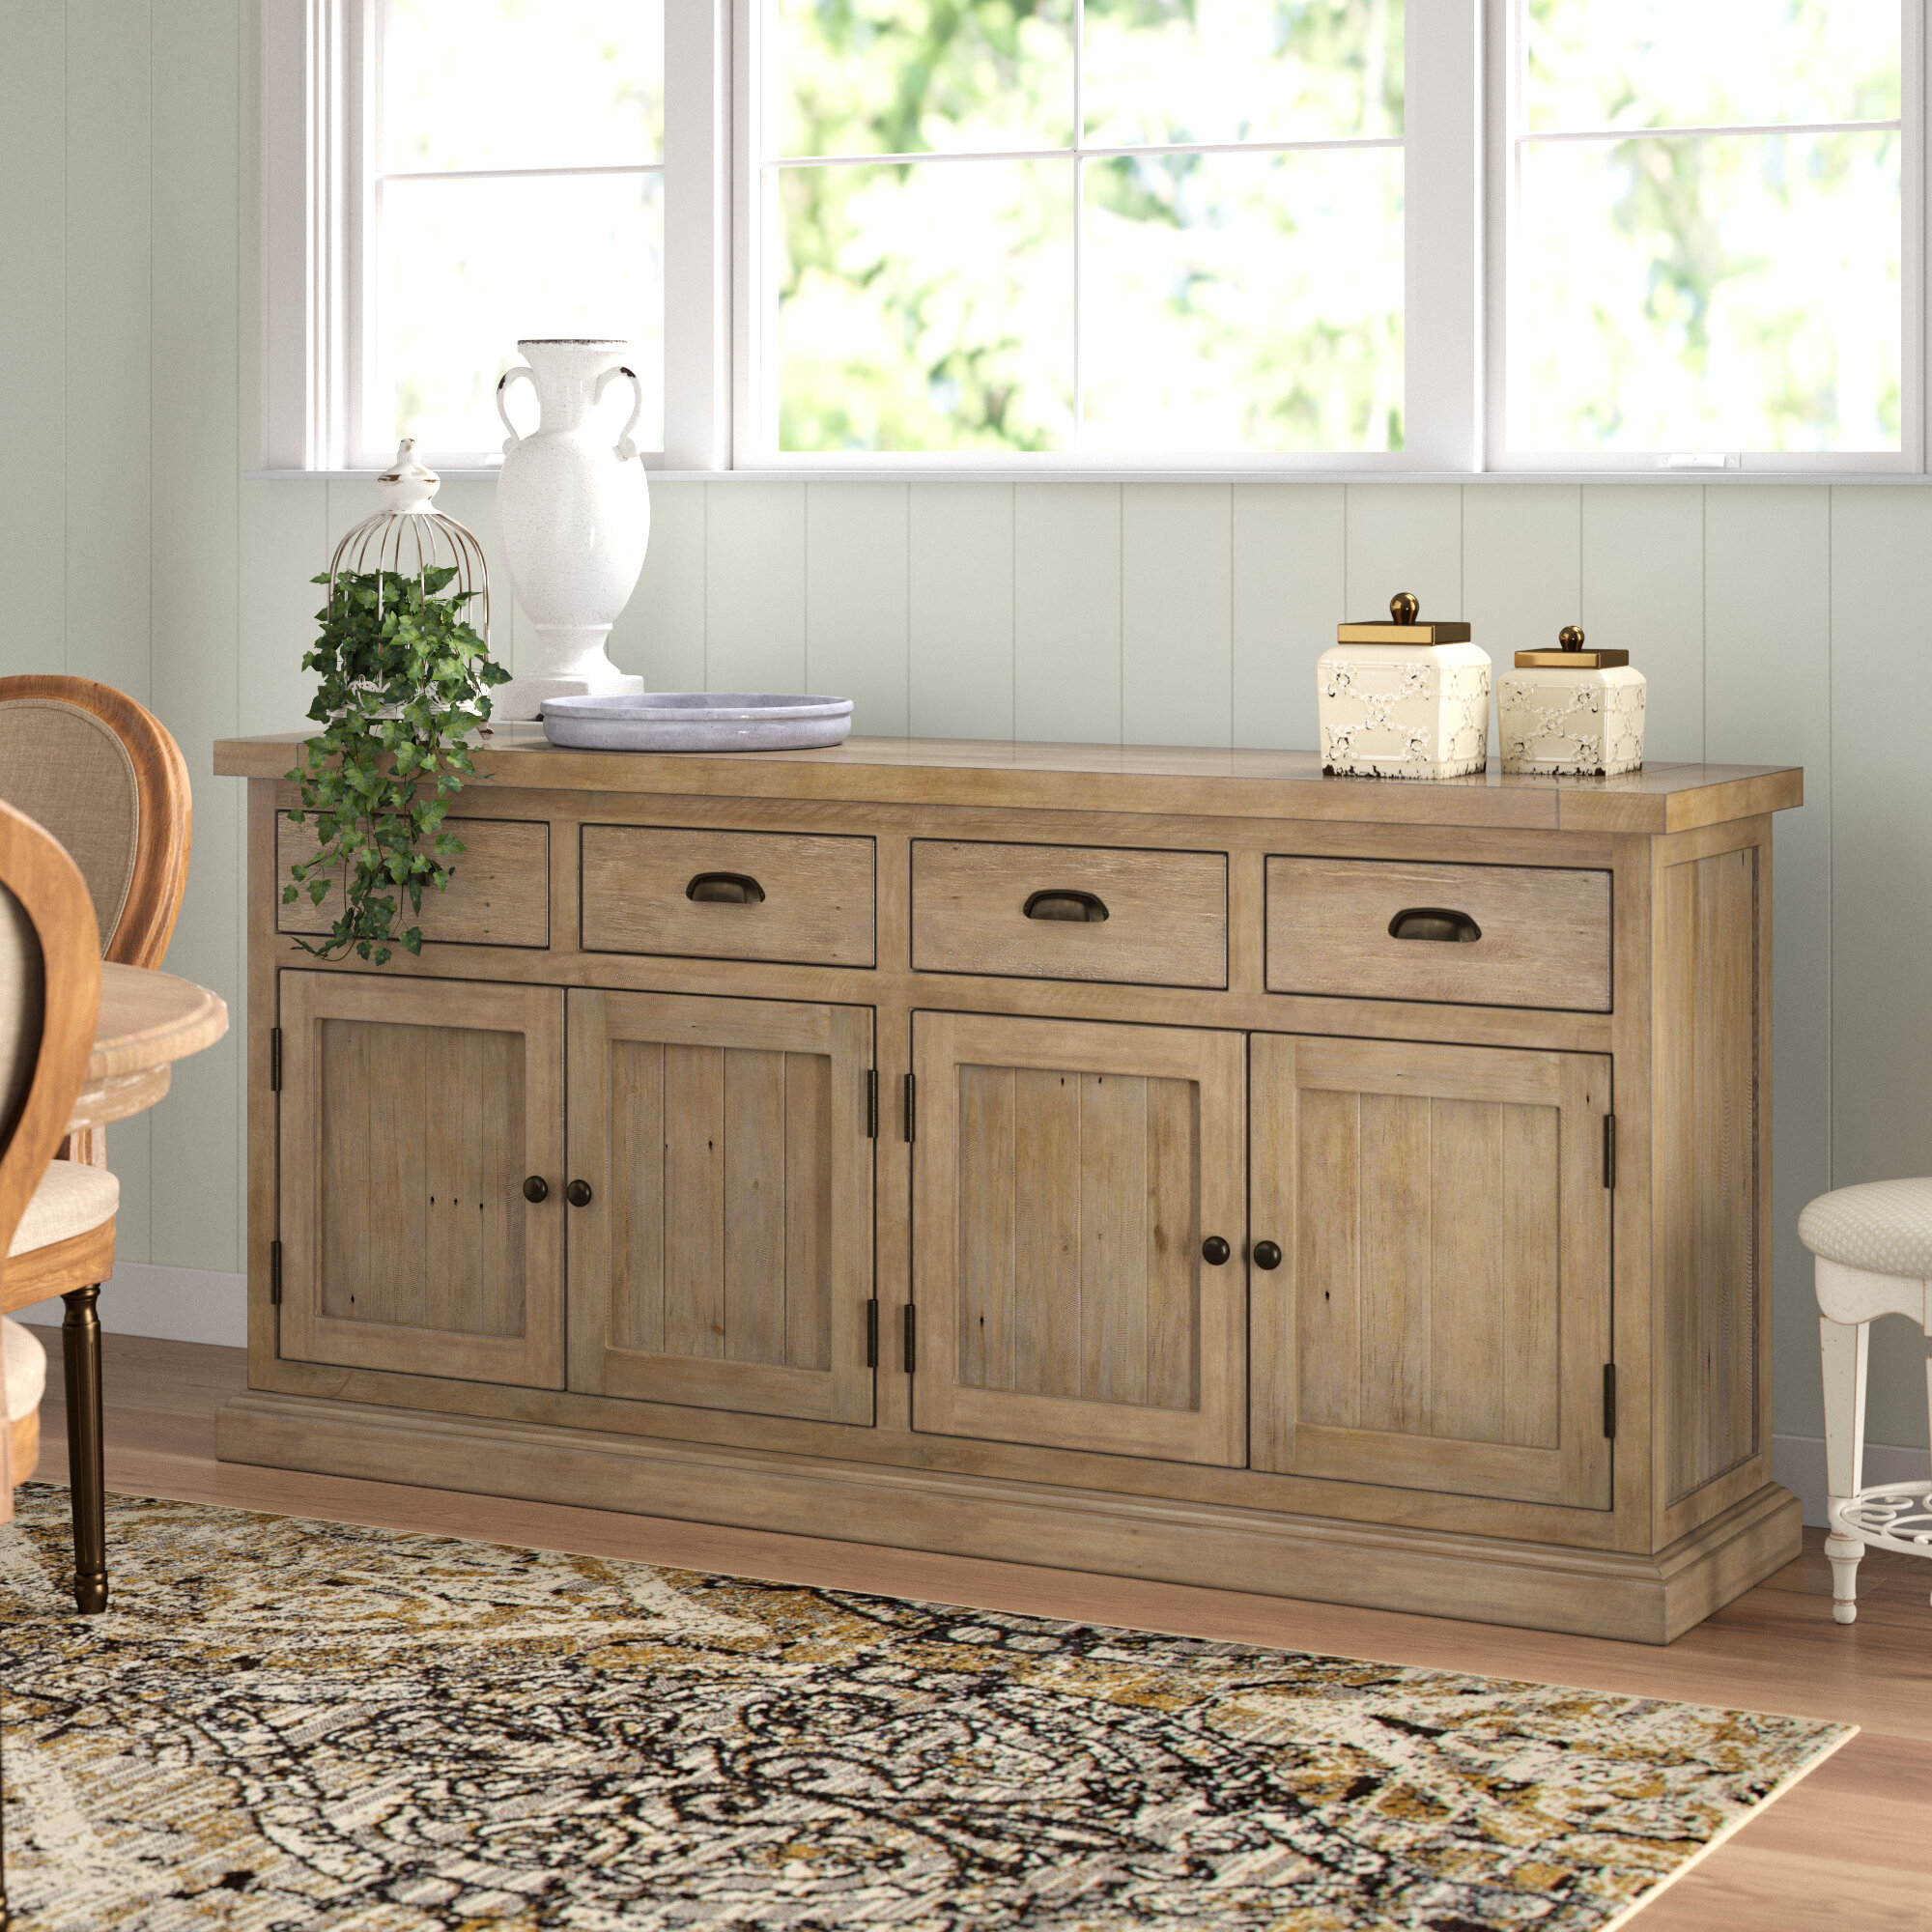 Gertrude Sideboard in Amityville Wood Sideboards (Image 22 of 30)